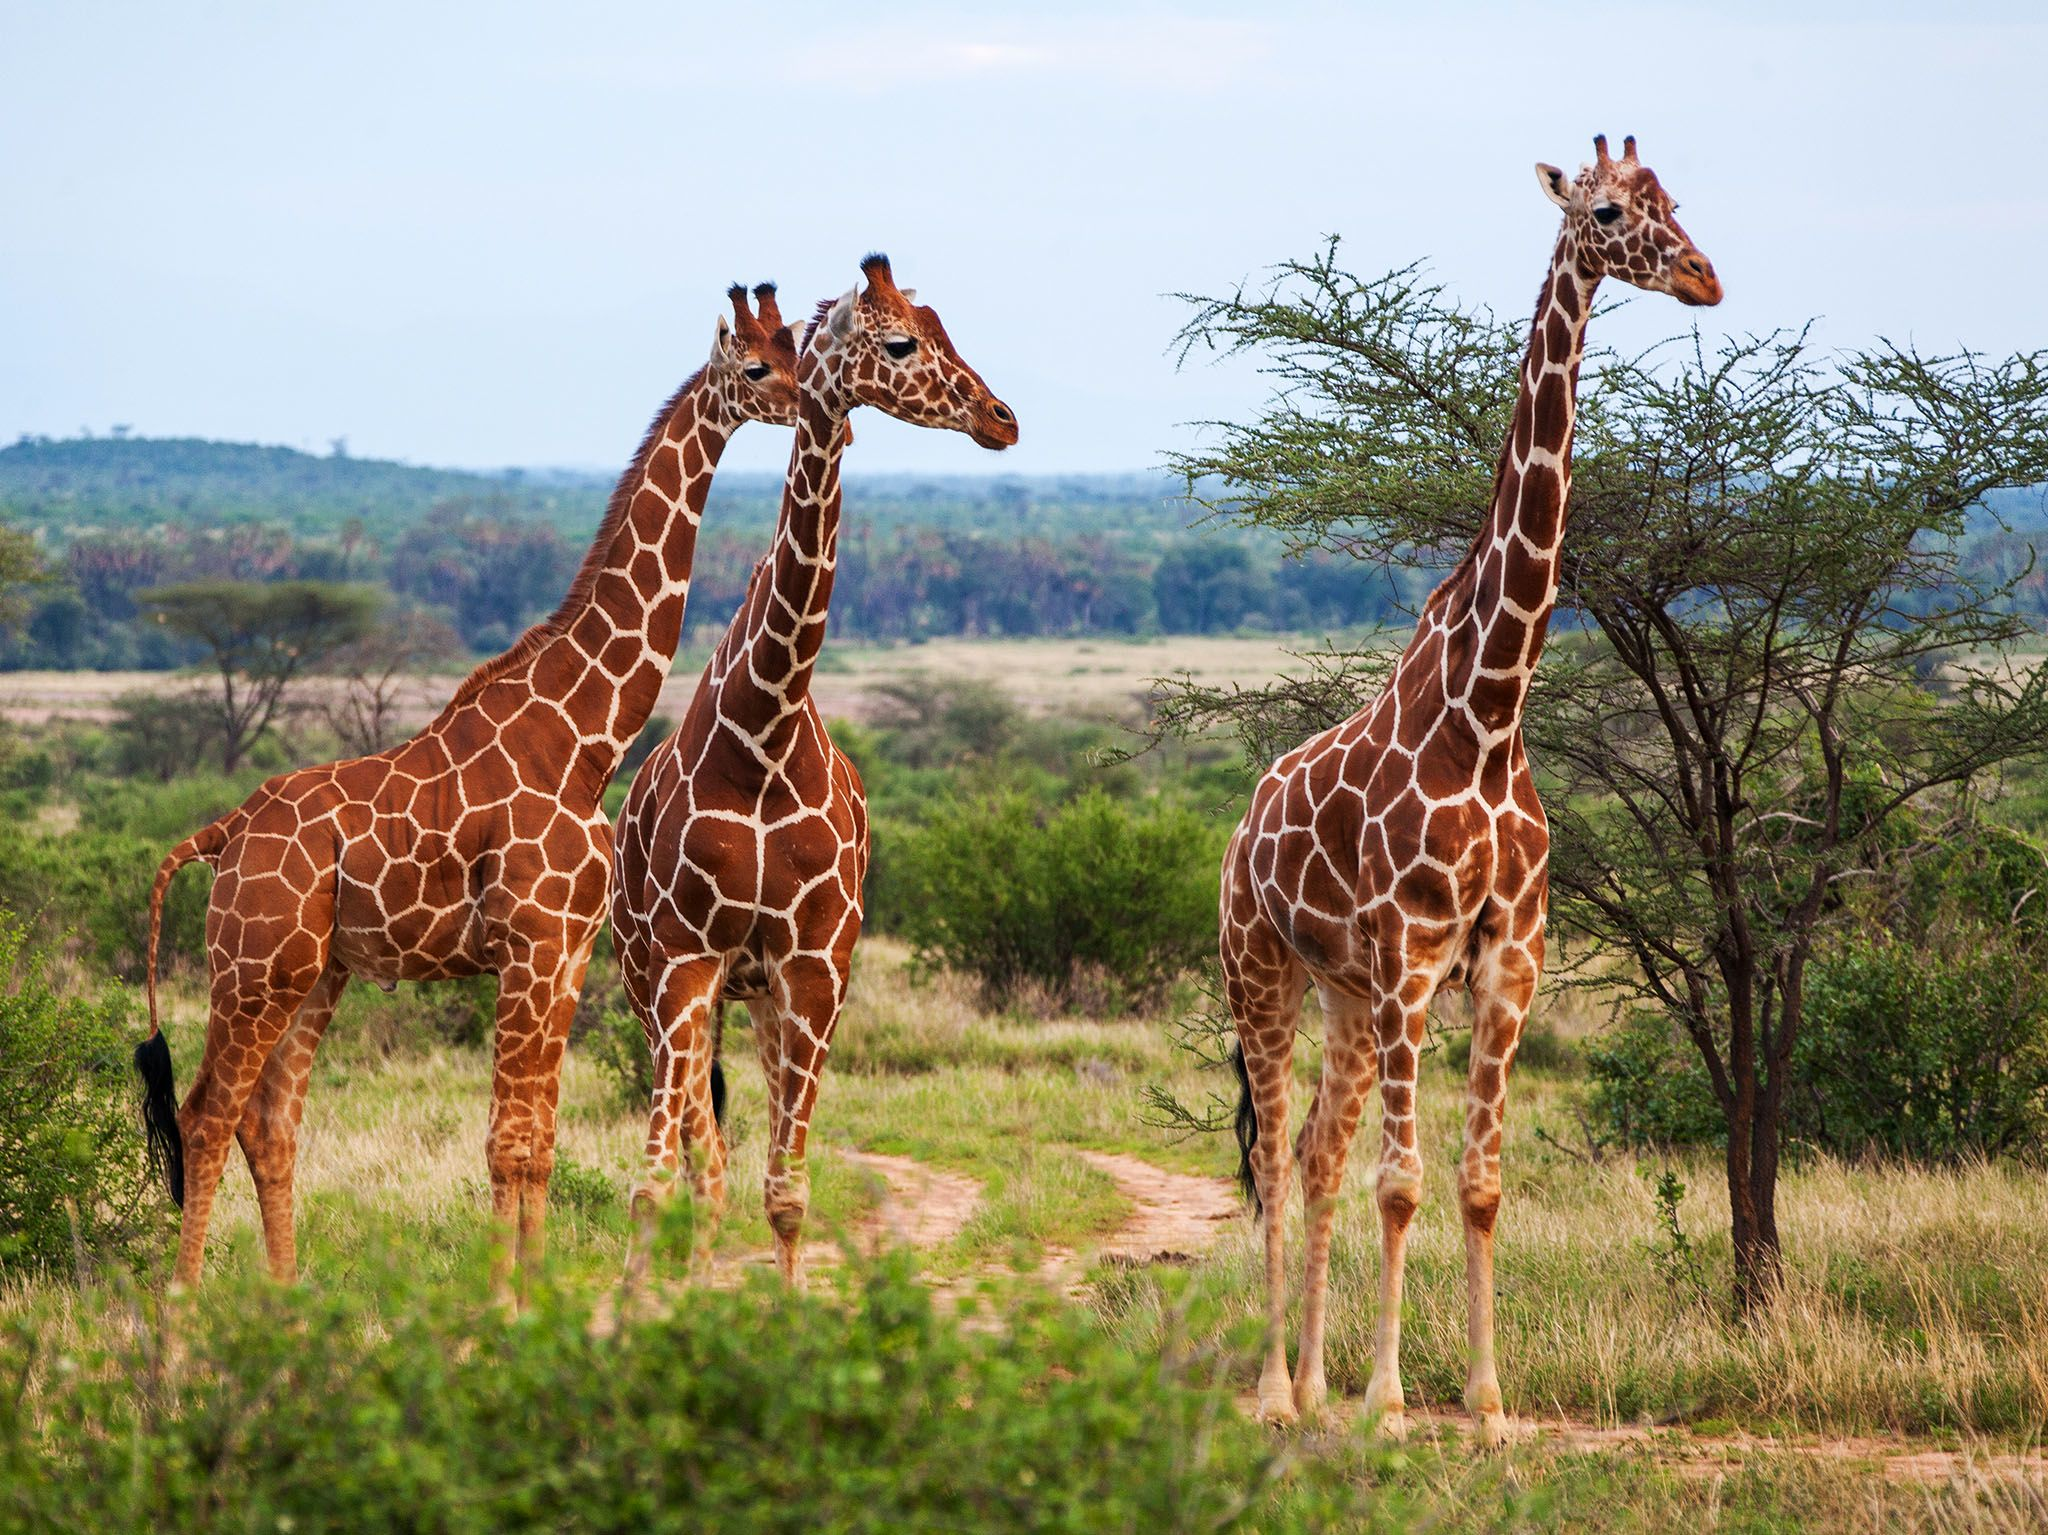 Kenya, Africa:  Small herd of giraffes in Kenya. This image is from Survive The Wild. [Photo of the day - June 2017]